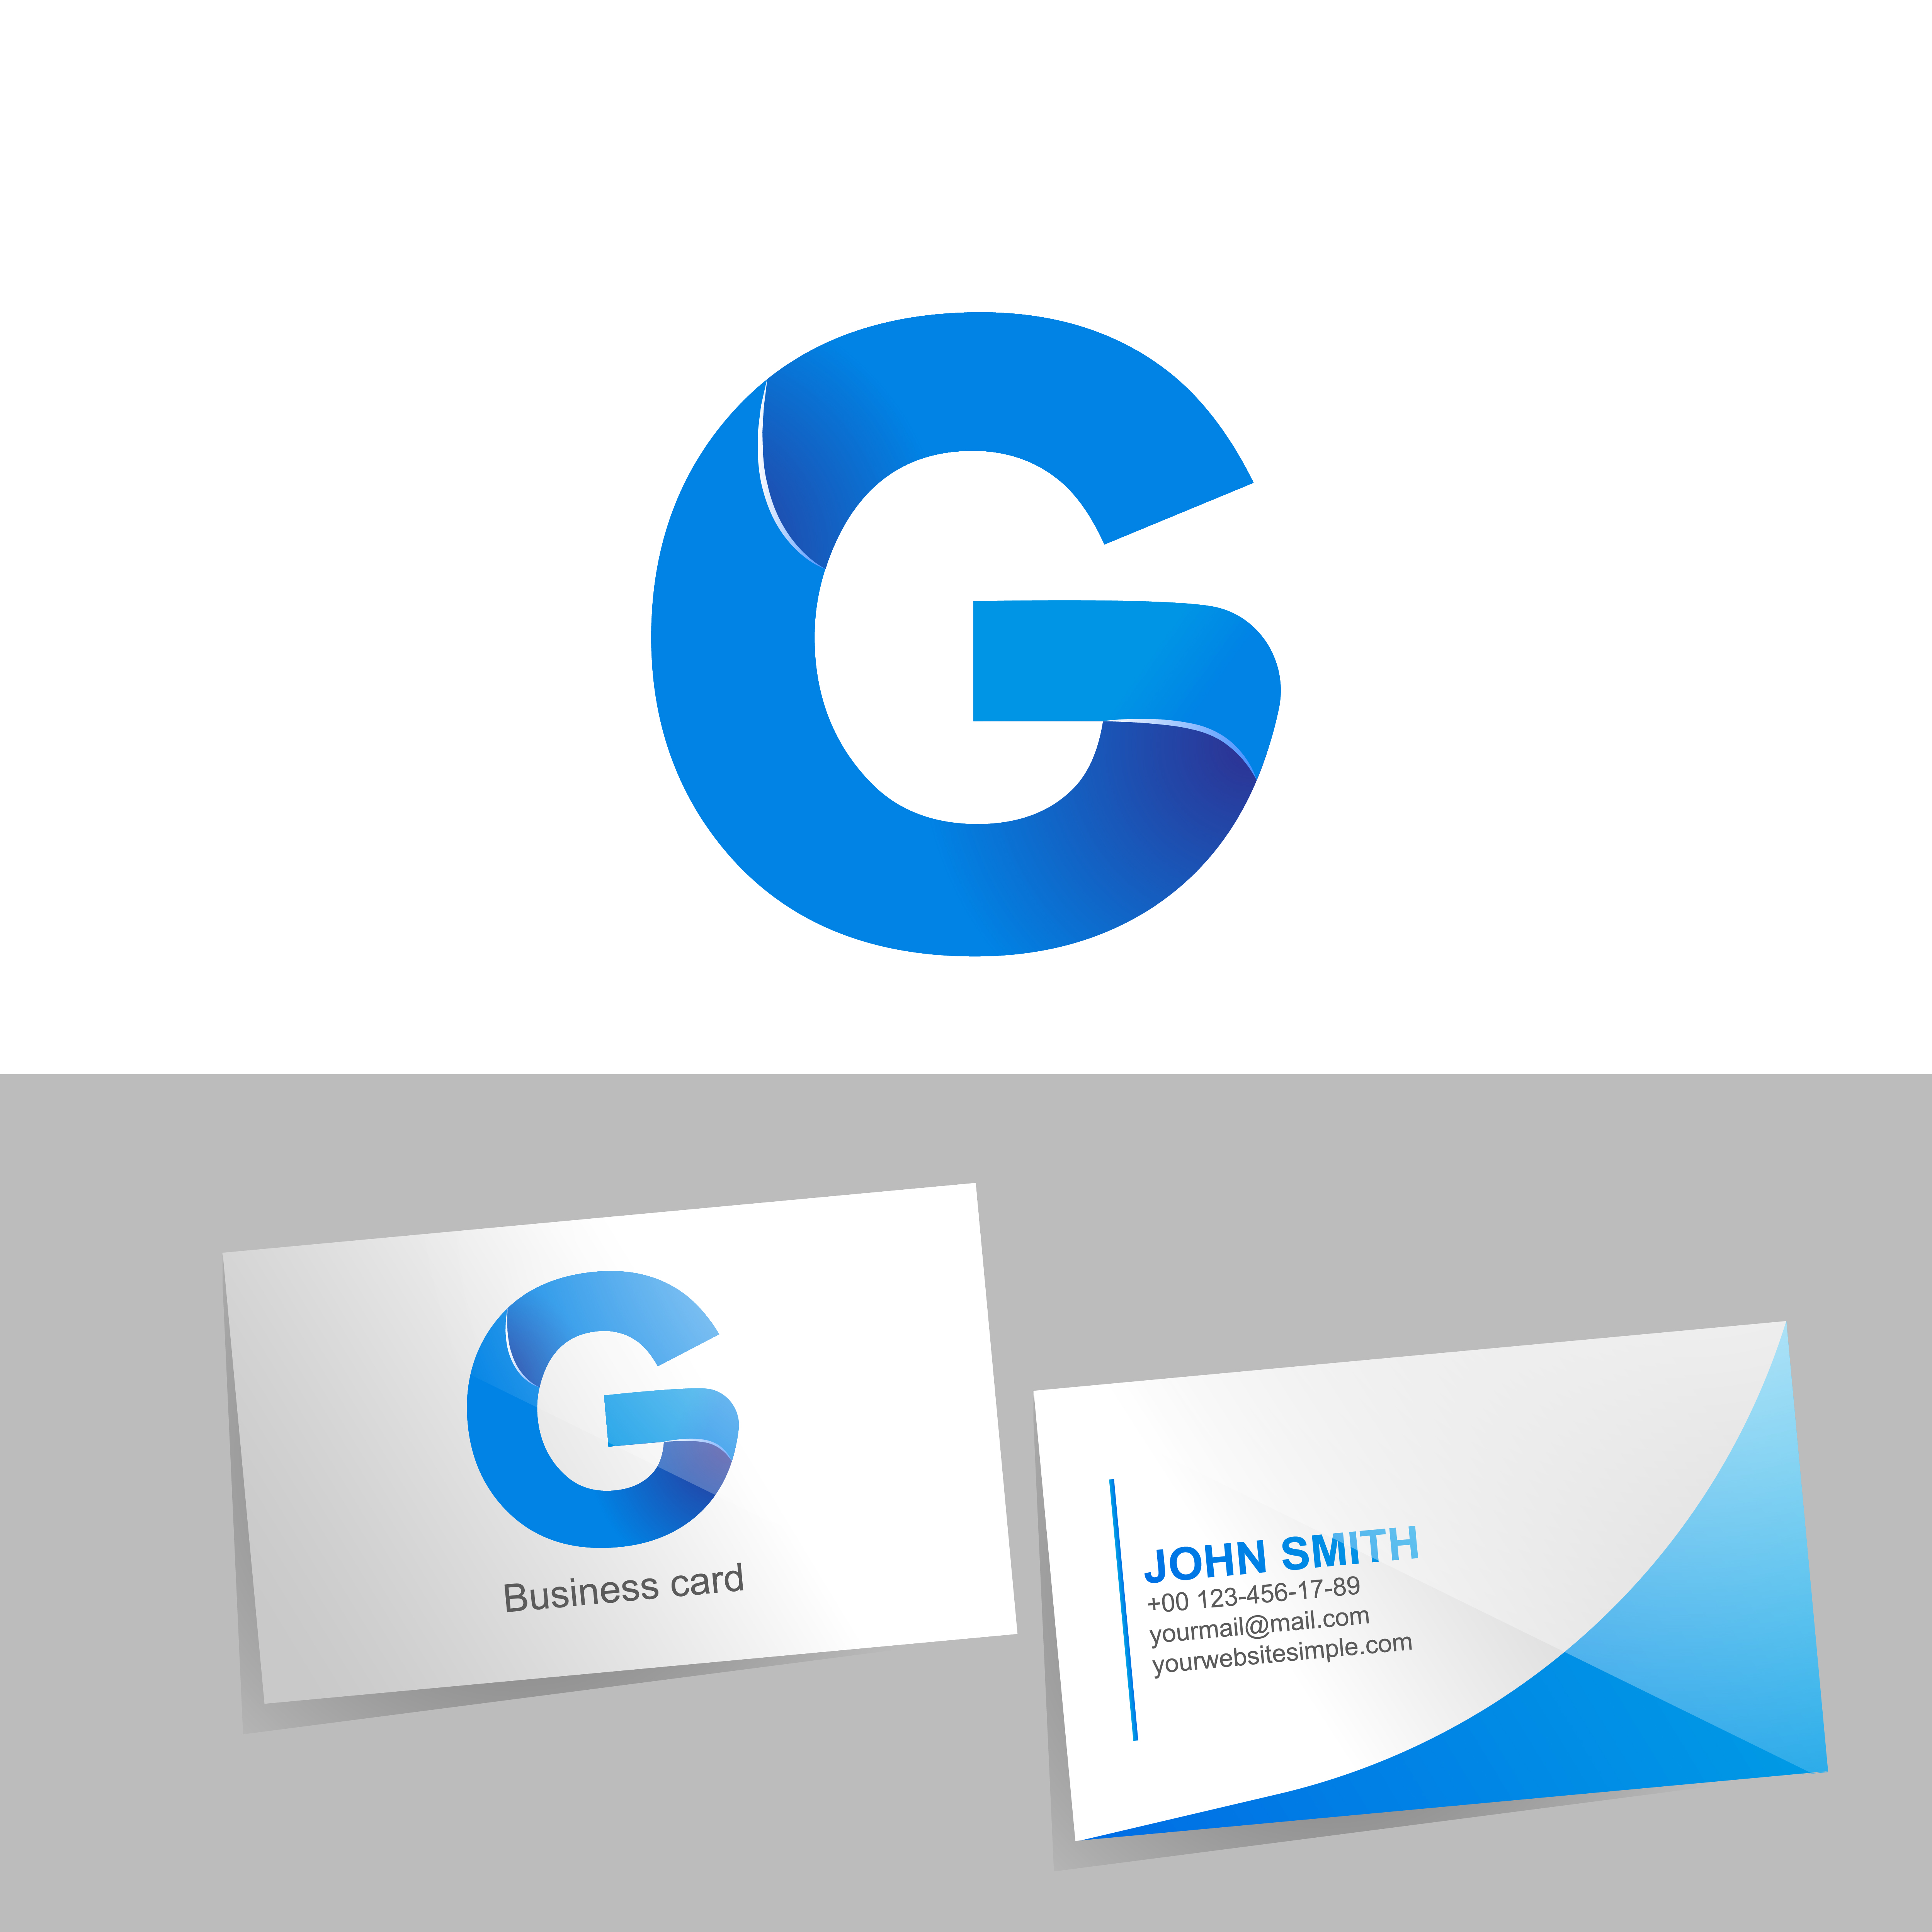 Gradient Logo With The Letter G Of The Logo. Mockup